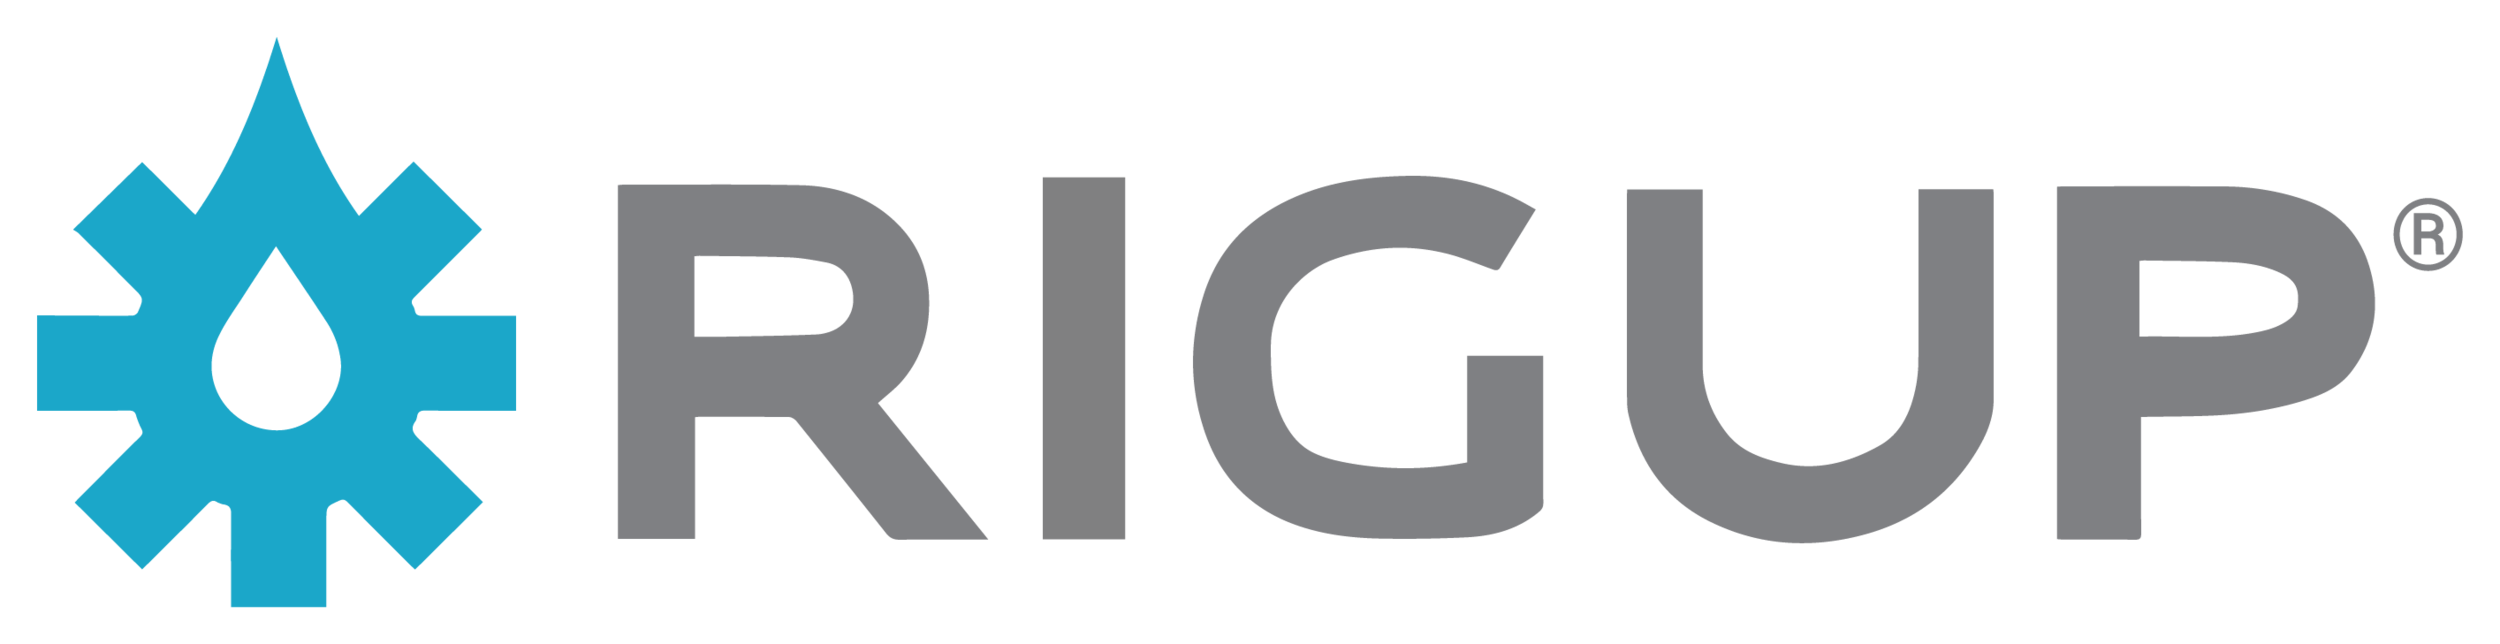 RigUp_logo_no background.png